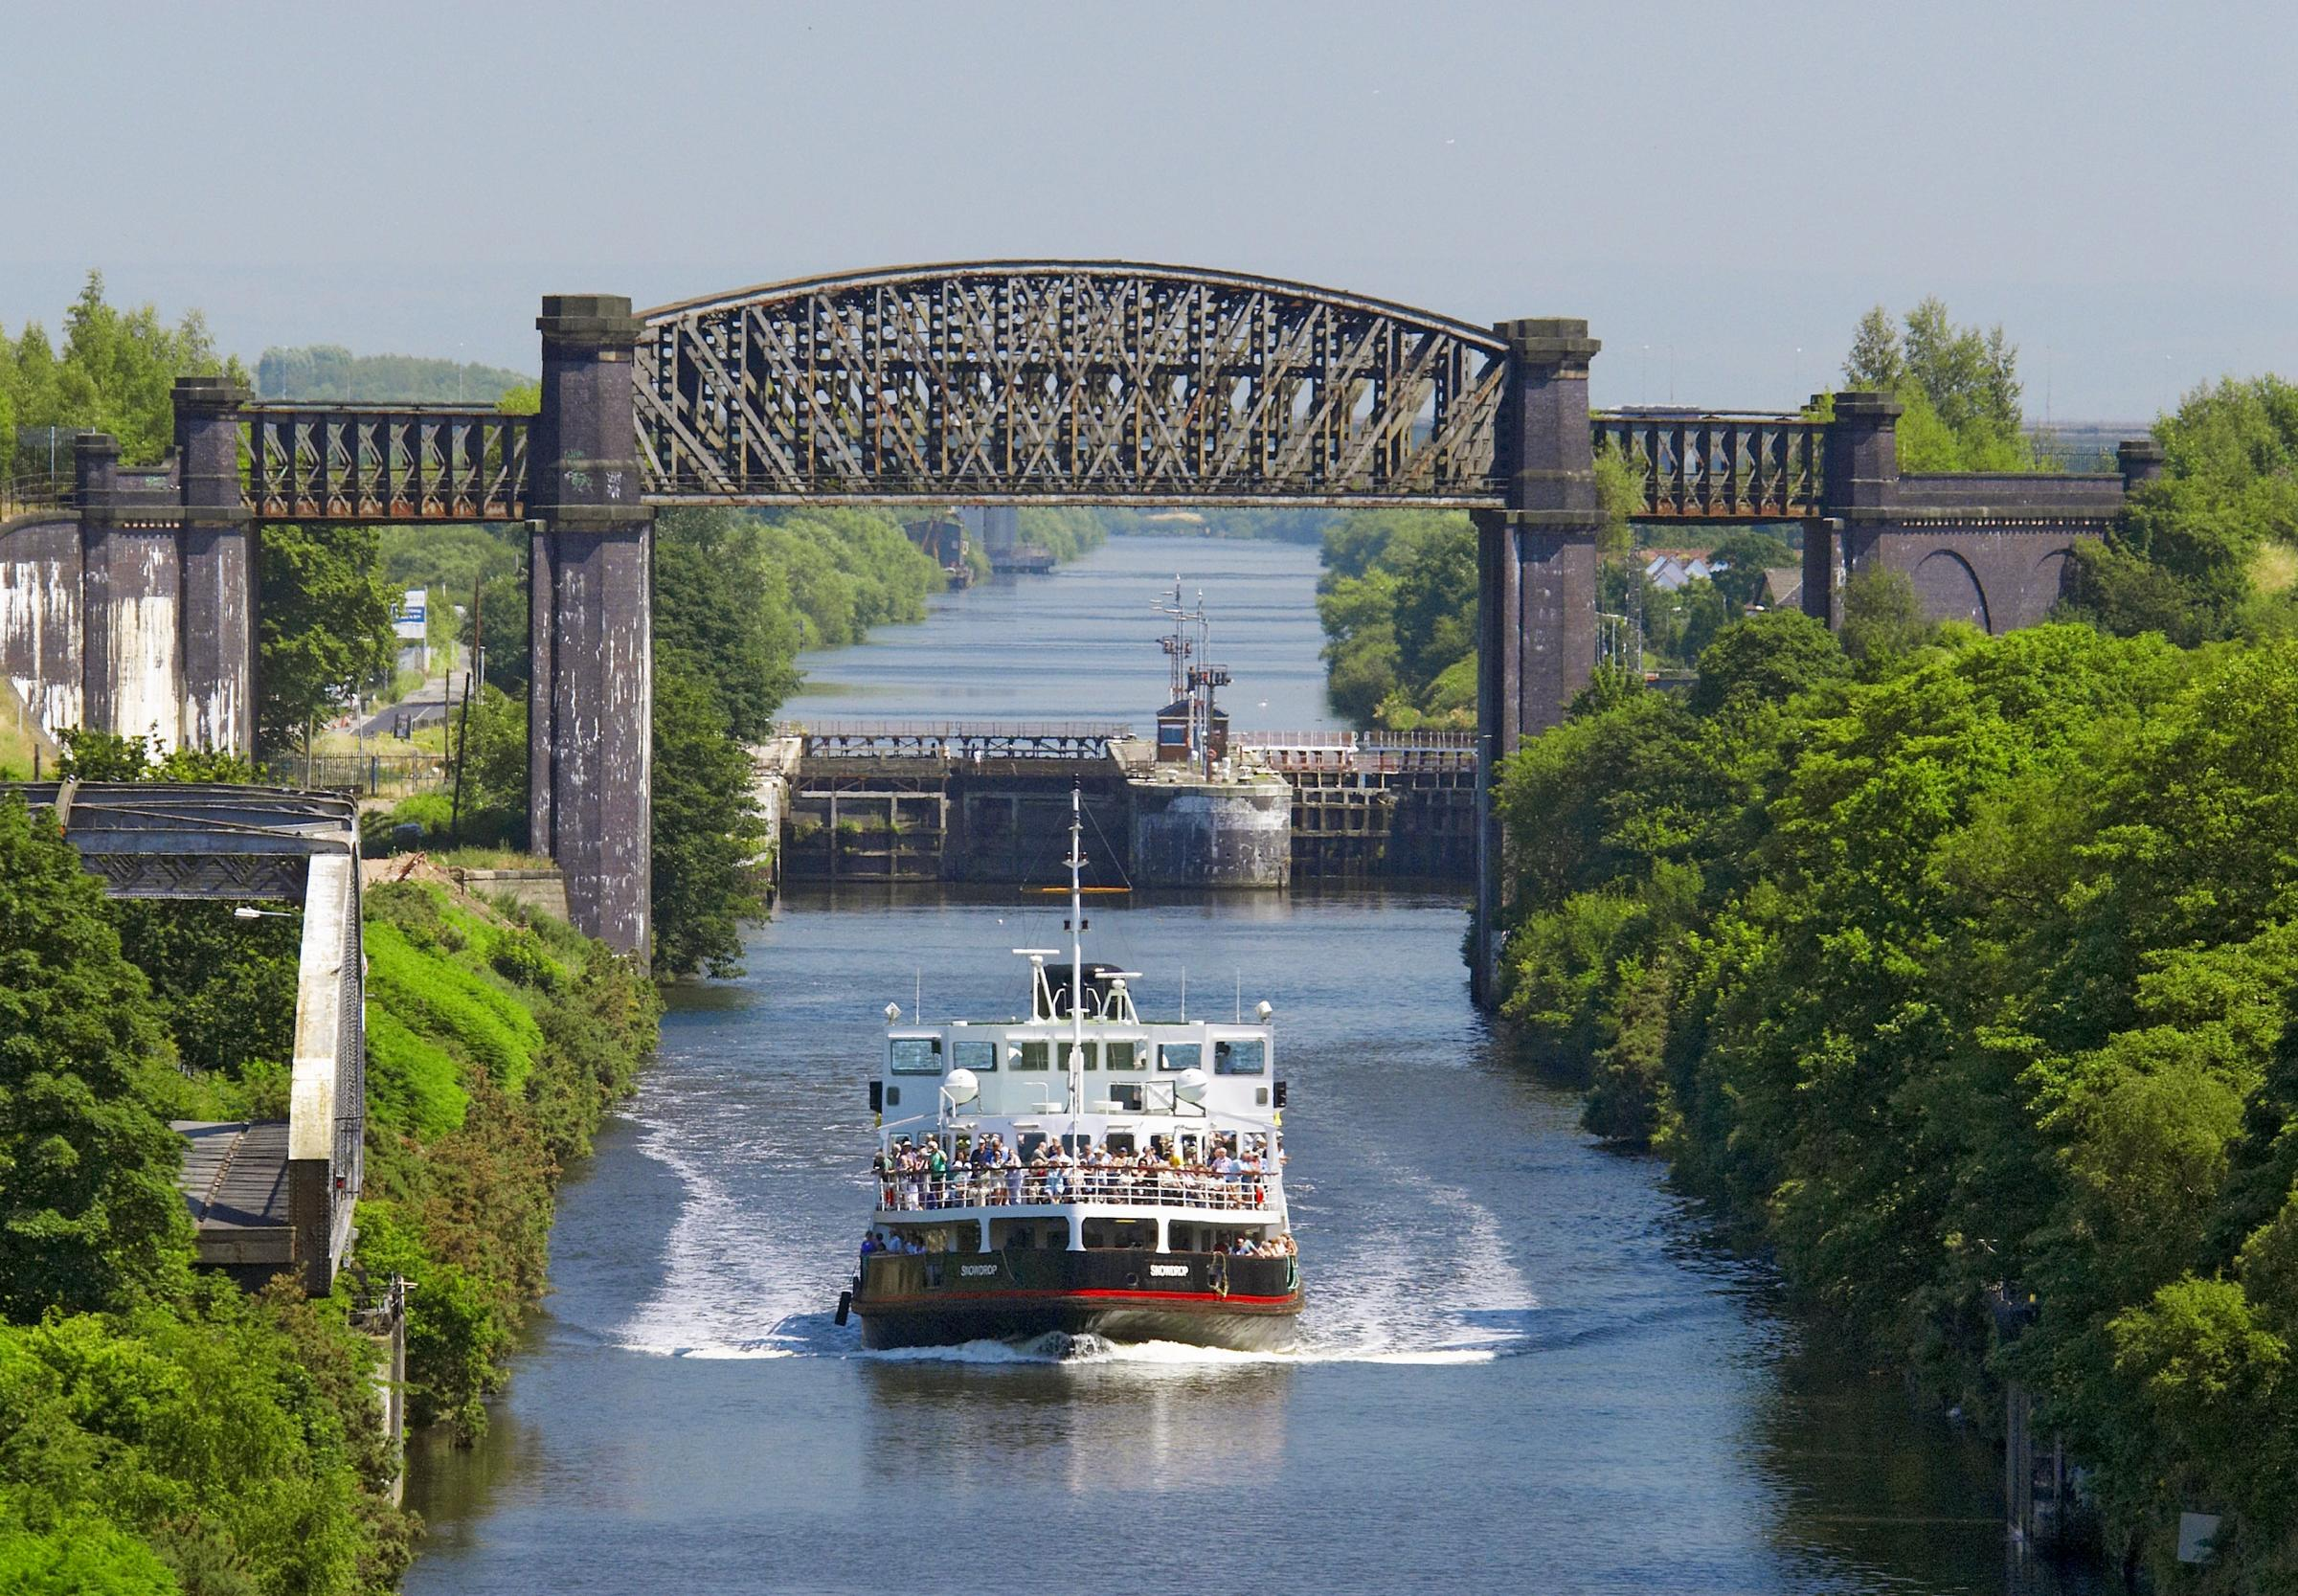 Mersey Ferries: Manchester Ship Canal Cruise